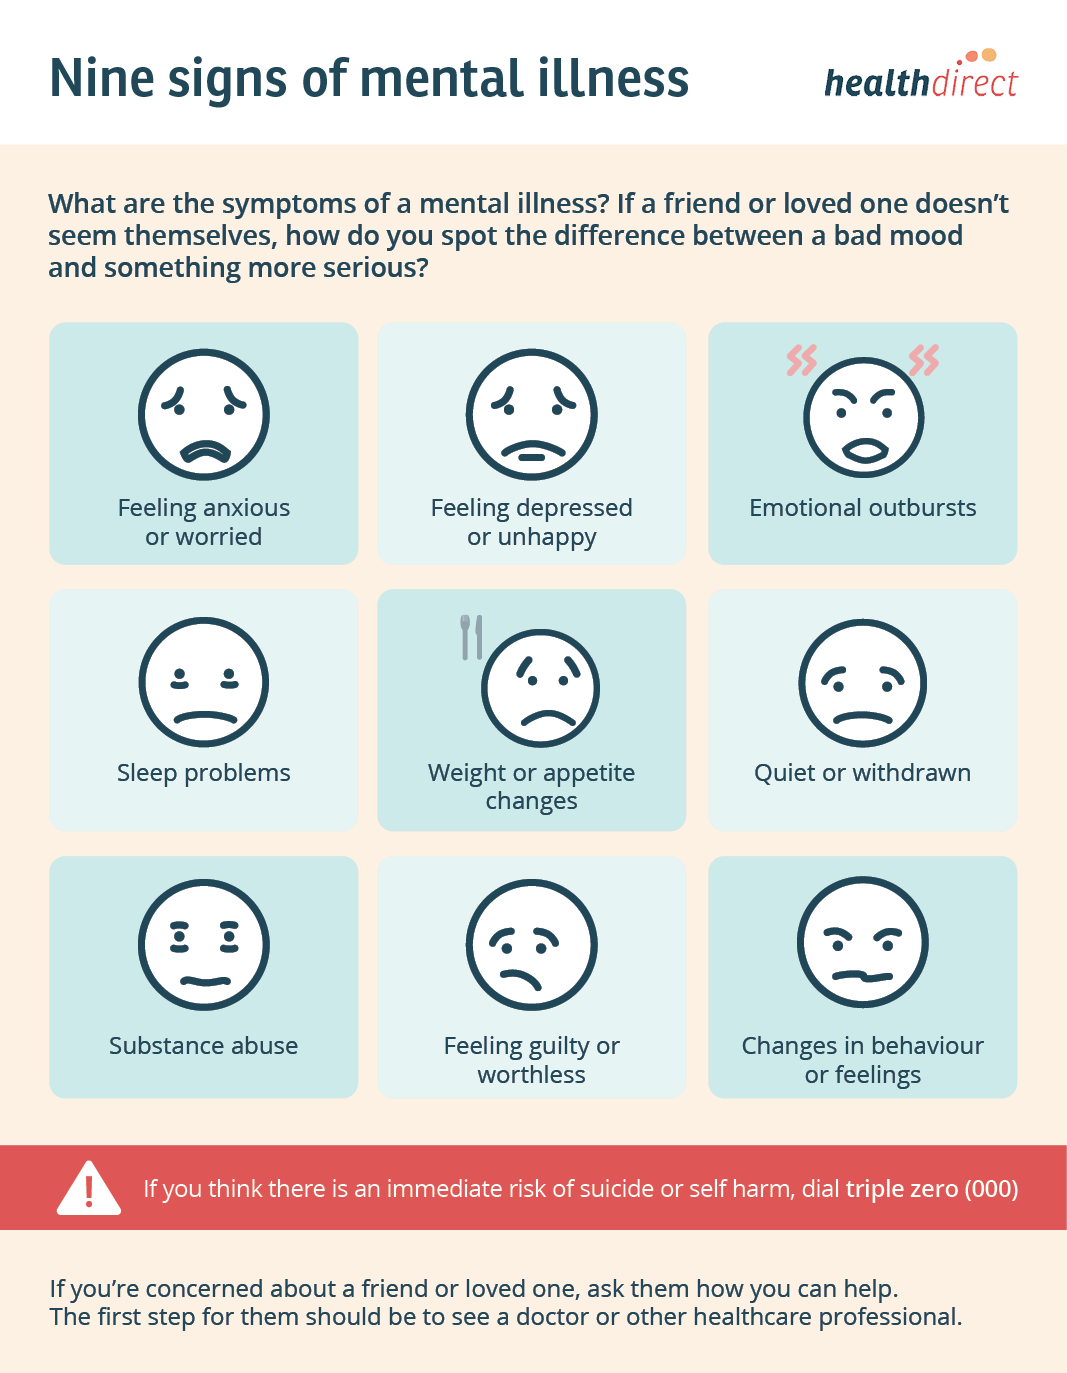 Nine signs of mental illness infographic